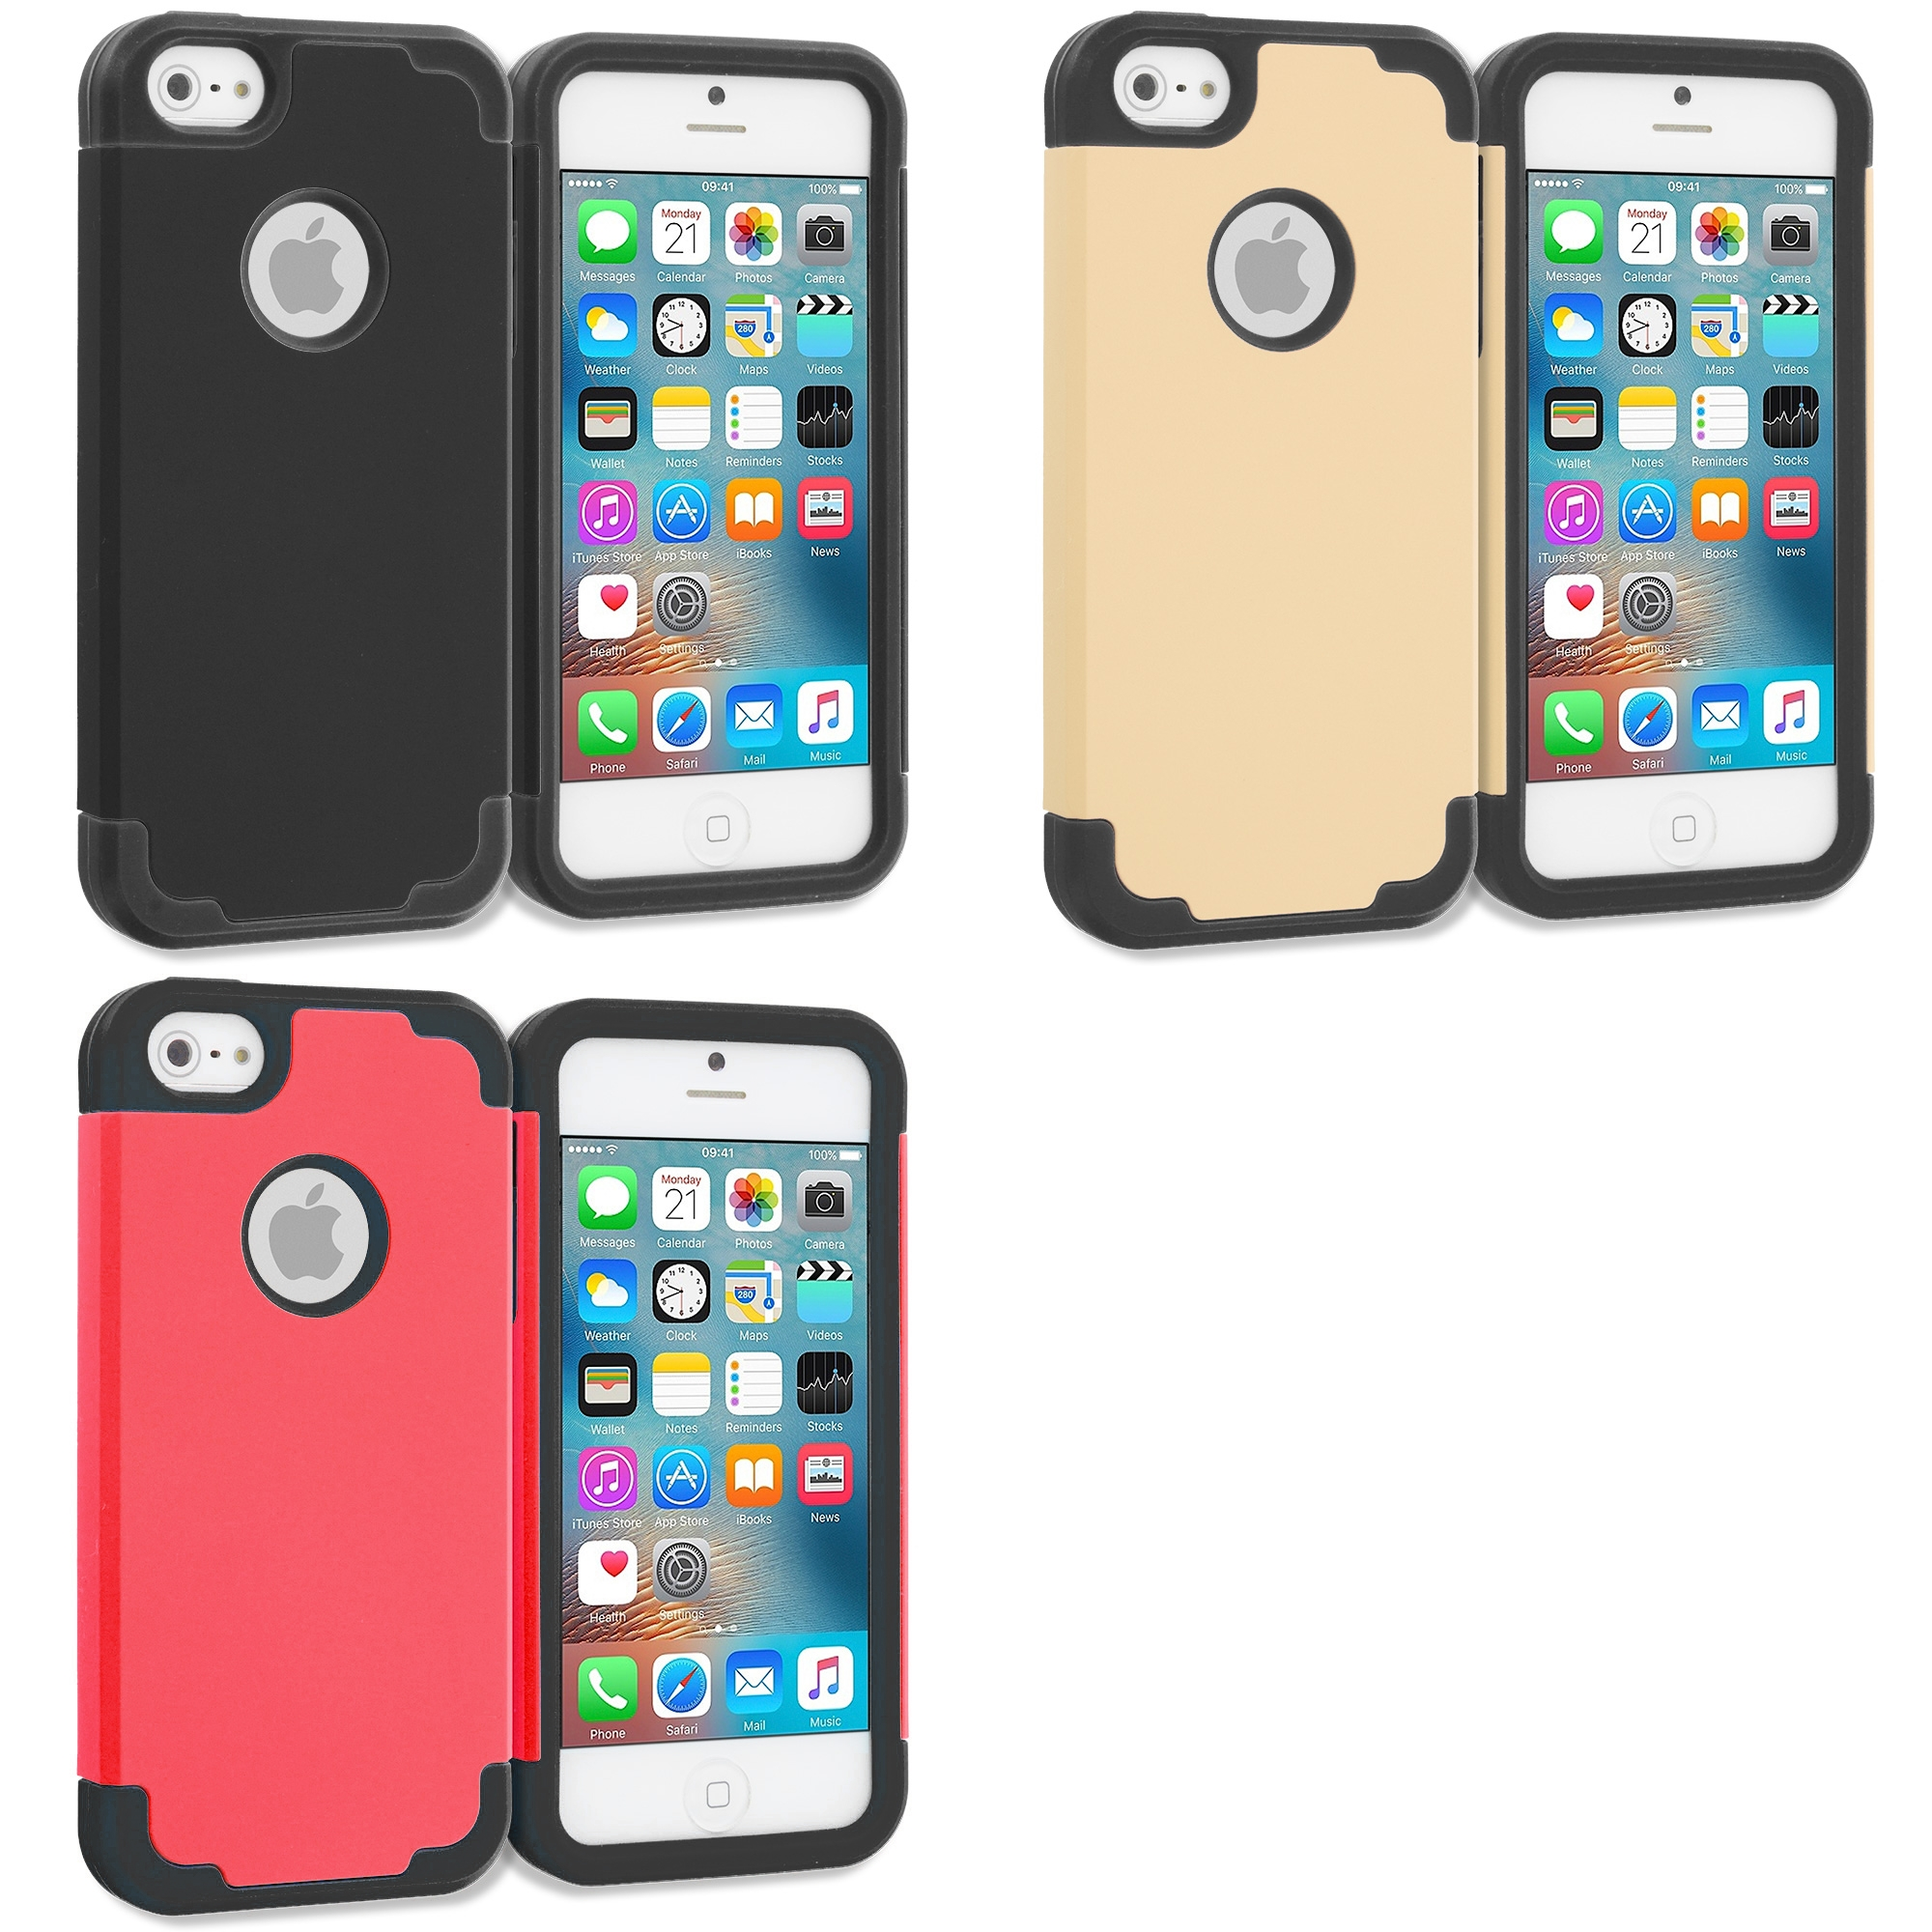 Apple iPhone 5/5S/SE Combo Pack : Black / Black Hybrid Slim Hard Soft Rubber Impact Protector Case Cover